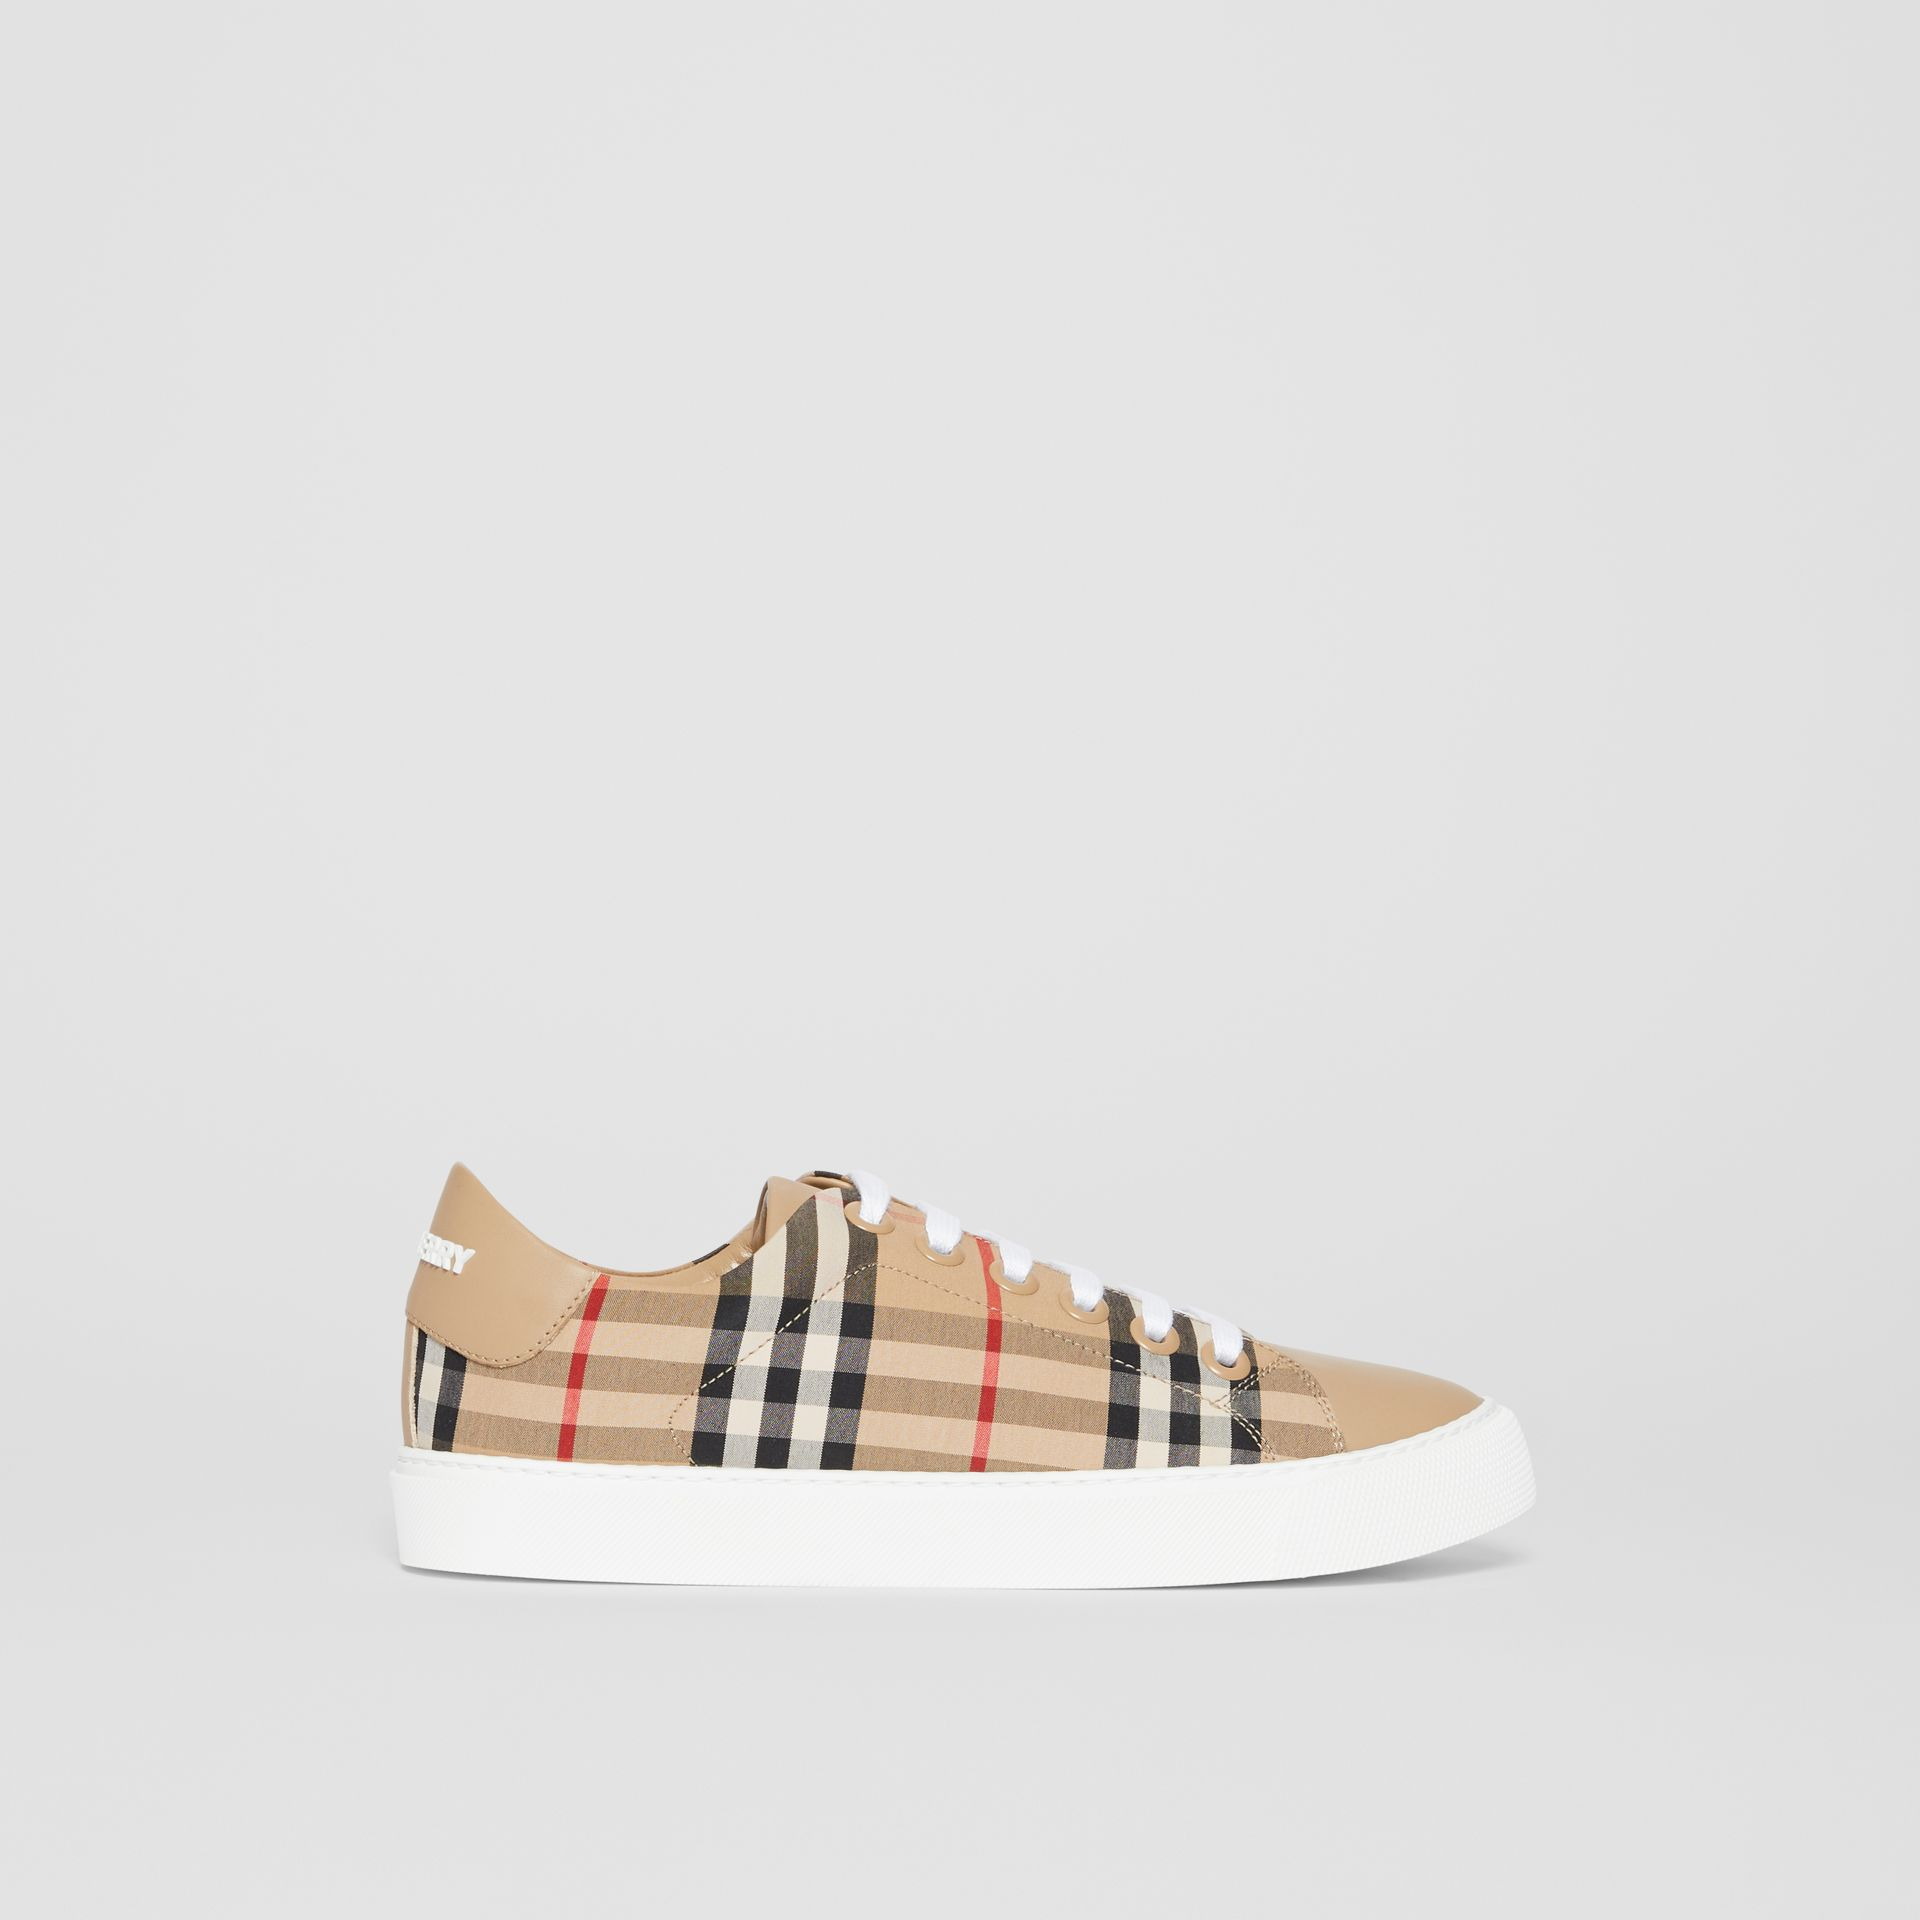 Vintage Check and Leather Sneakers in Archive Beige - Women | Burberry - gallery image 5